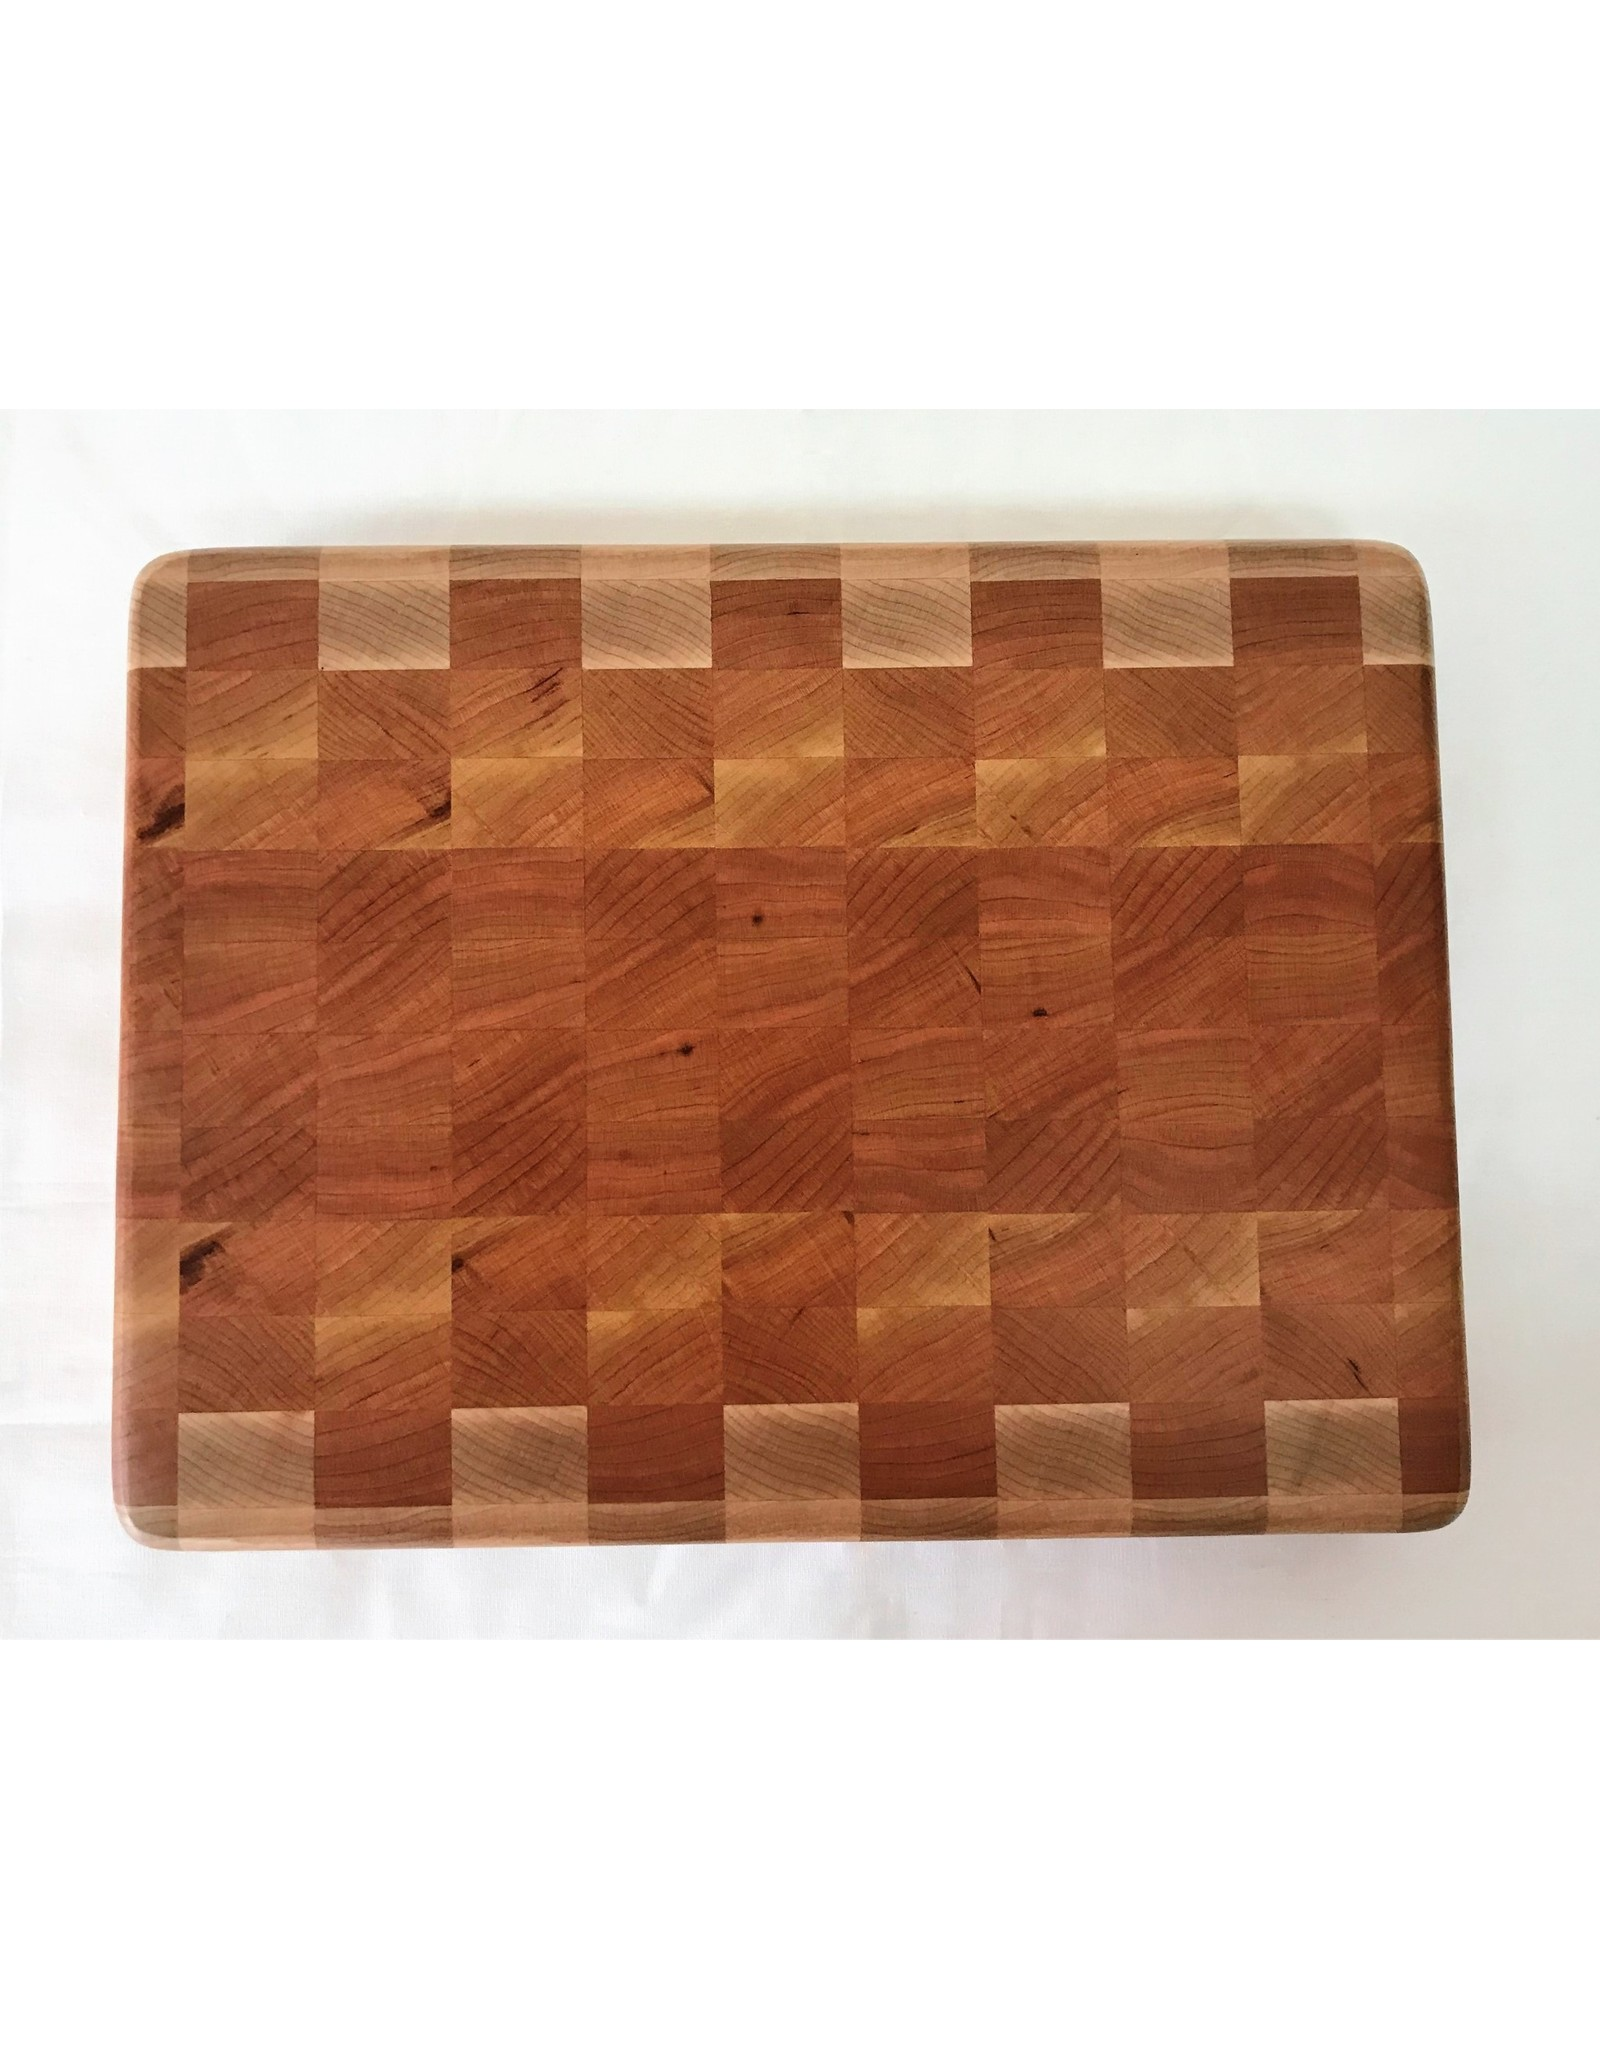 Richard Rose Culinary End Grain Cutting Board